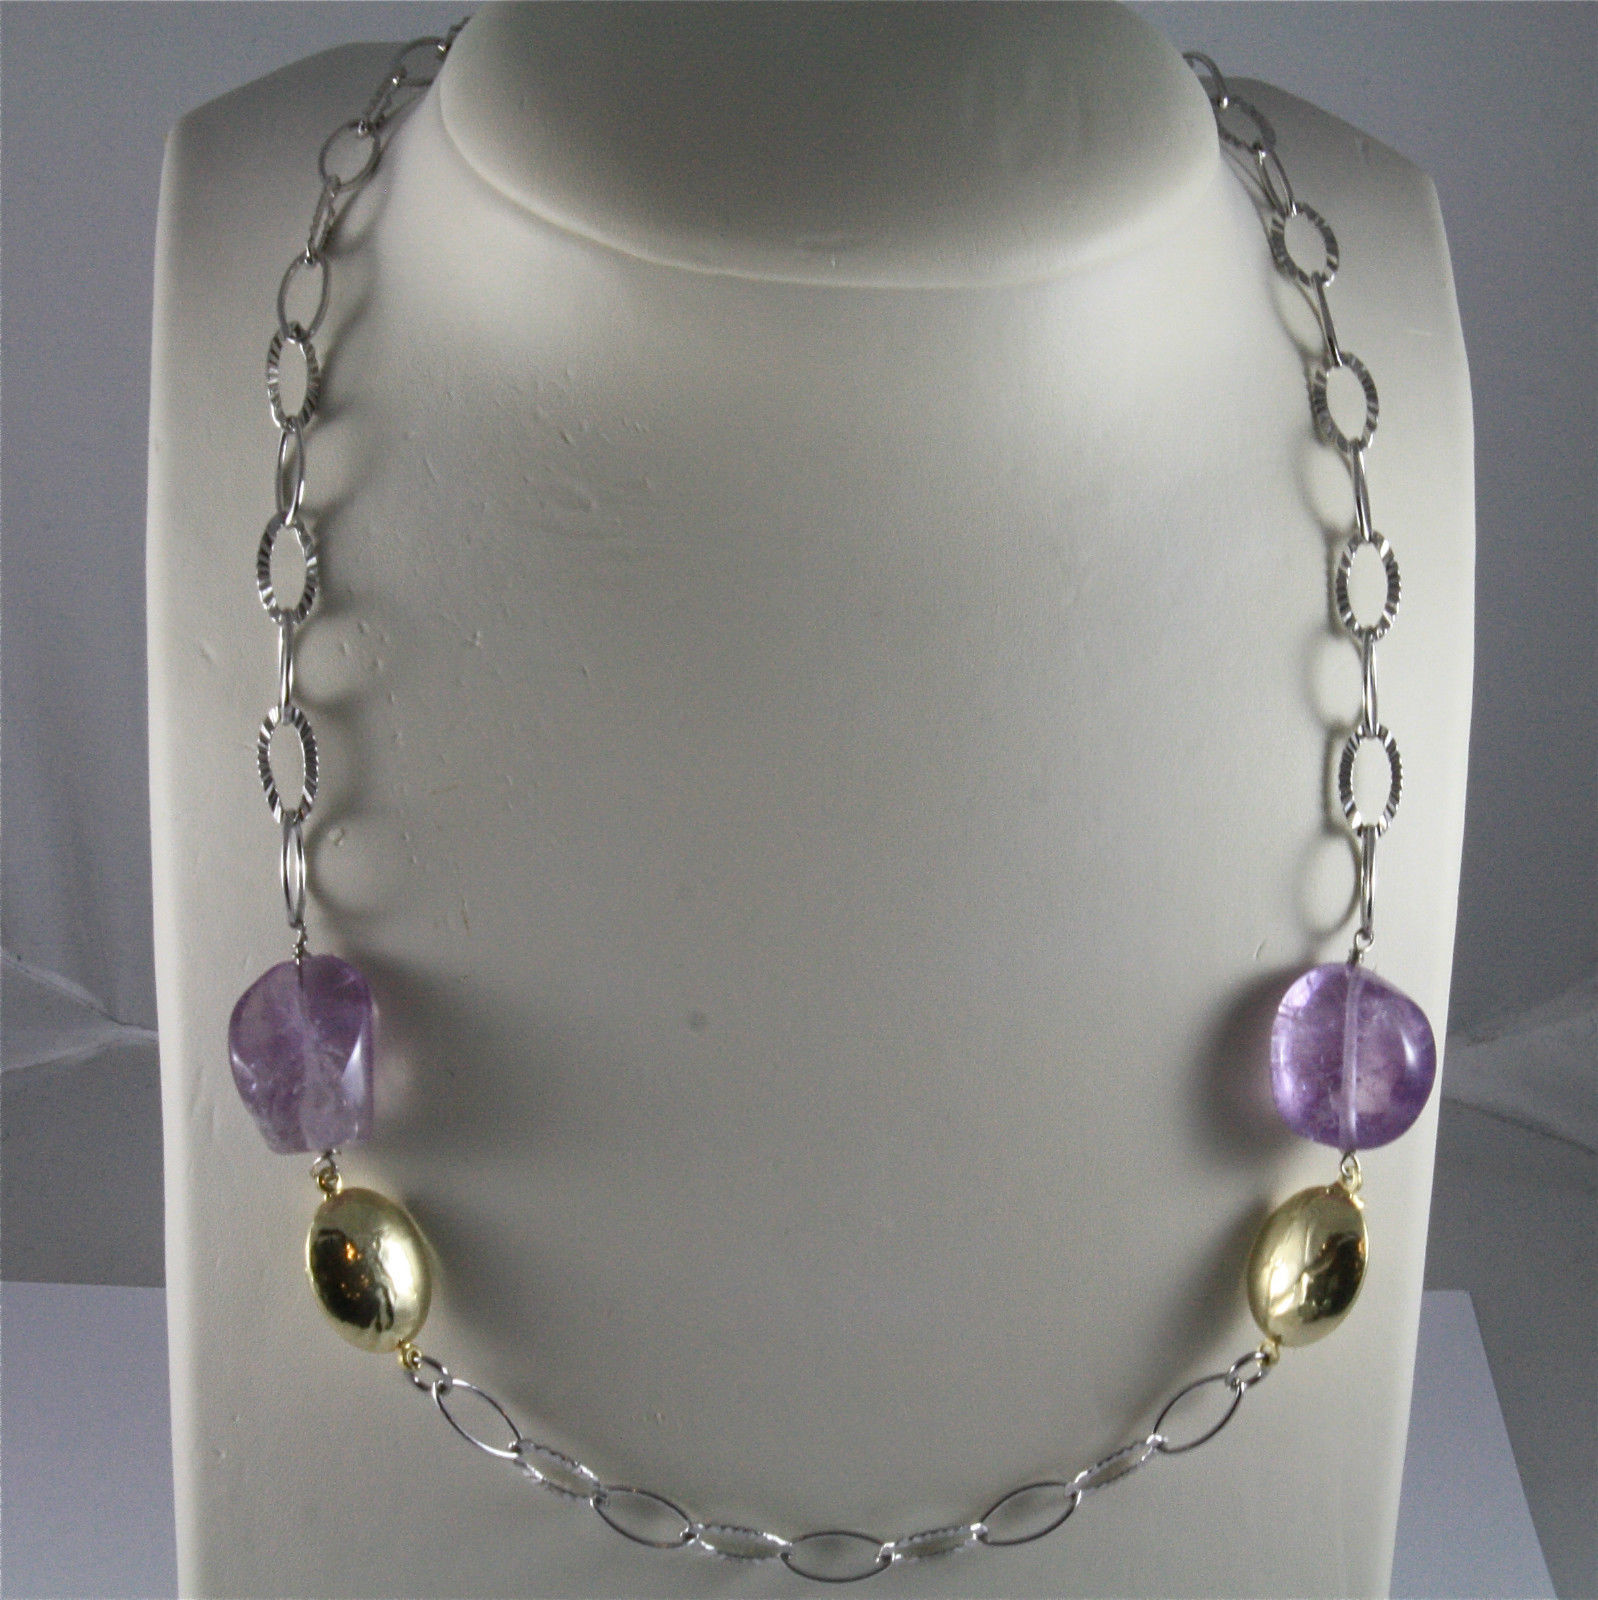 .925 SILVER RHODIUM NECKLACE 23,62 In, AMETHYST, GOLD PLATED NUGGETS, OVAL MESH.